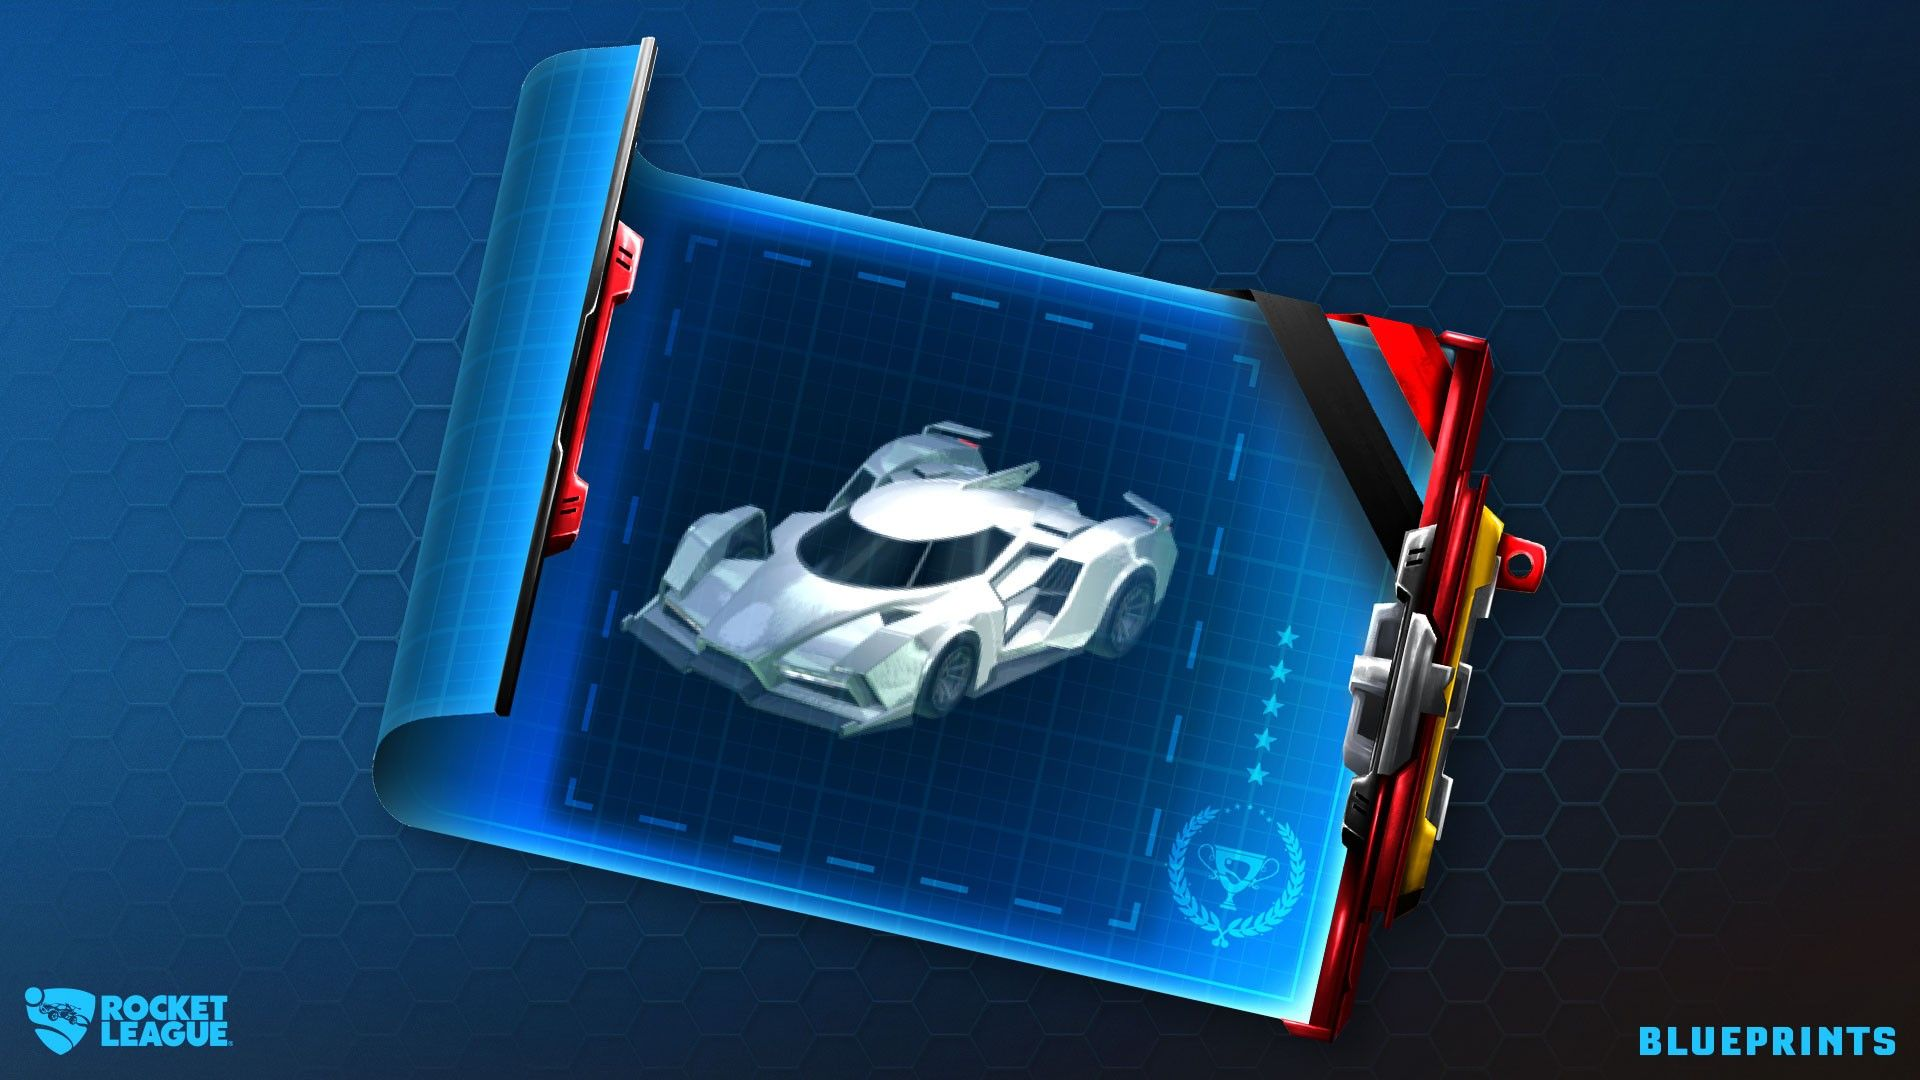 rocket league blueprints